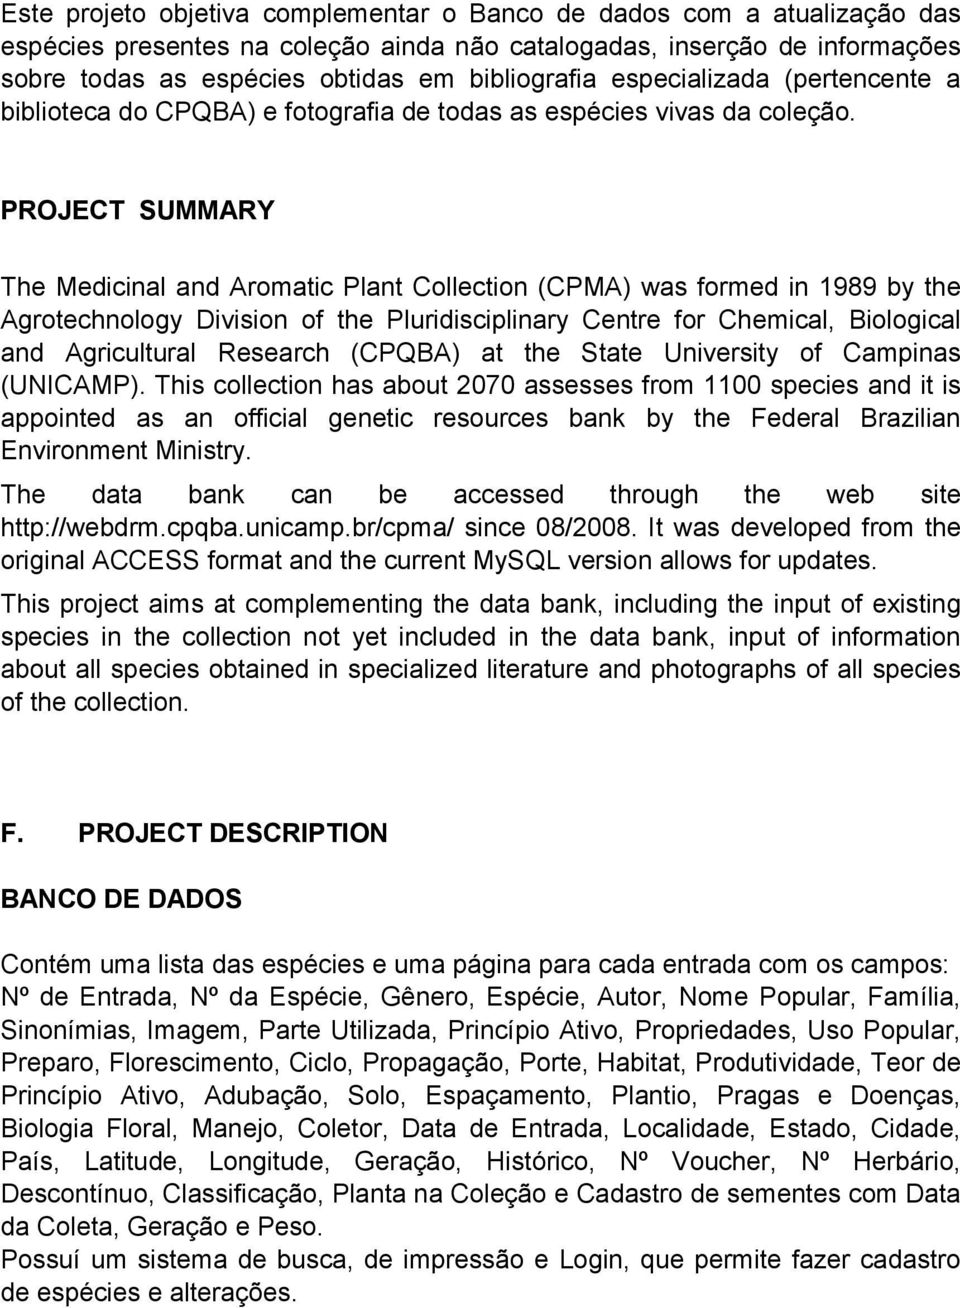 PROJECT SUMMARY The Medicinal and Aromatic Plant Collection (CPMA) was formed in 1989 by the Agrotechnology Division of the Pluridisciplinary Centre for Chemical, Biological and Agricultural Research